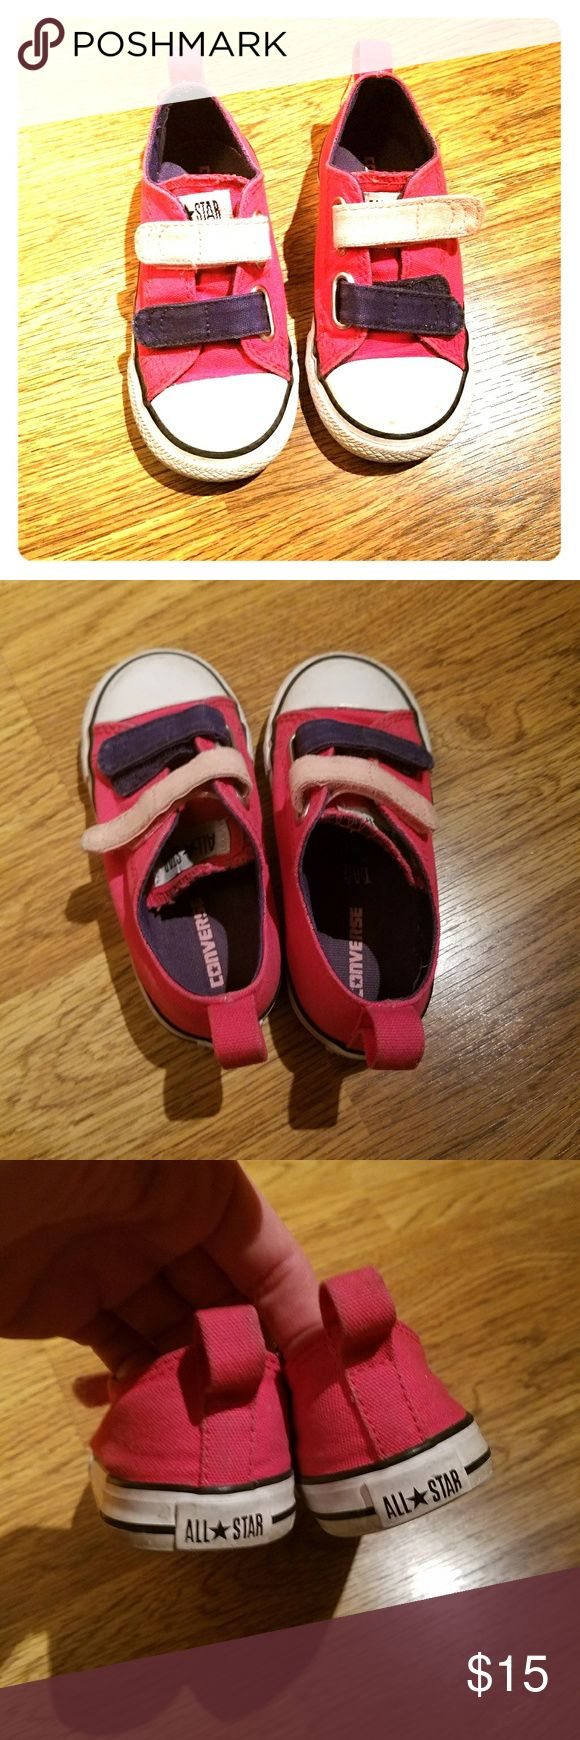 Converse tennis shoes size 8 in toddlers girl Converse tennis shoes size 8 in toddler's sizes for girls.   Gently used in good condition.  Velcro straps Converse Shoes